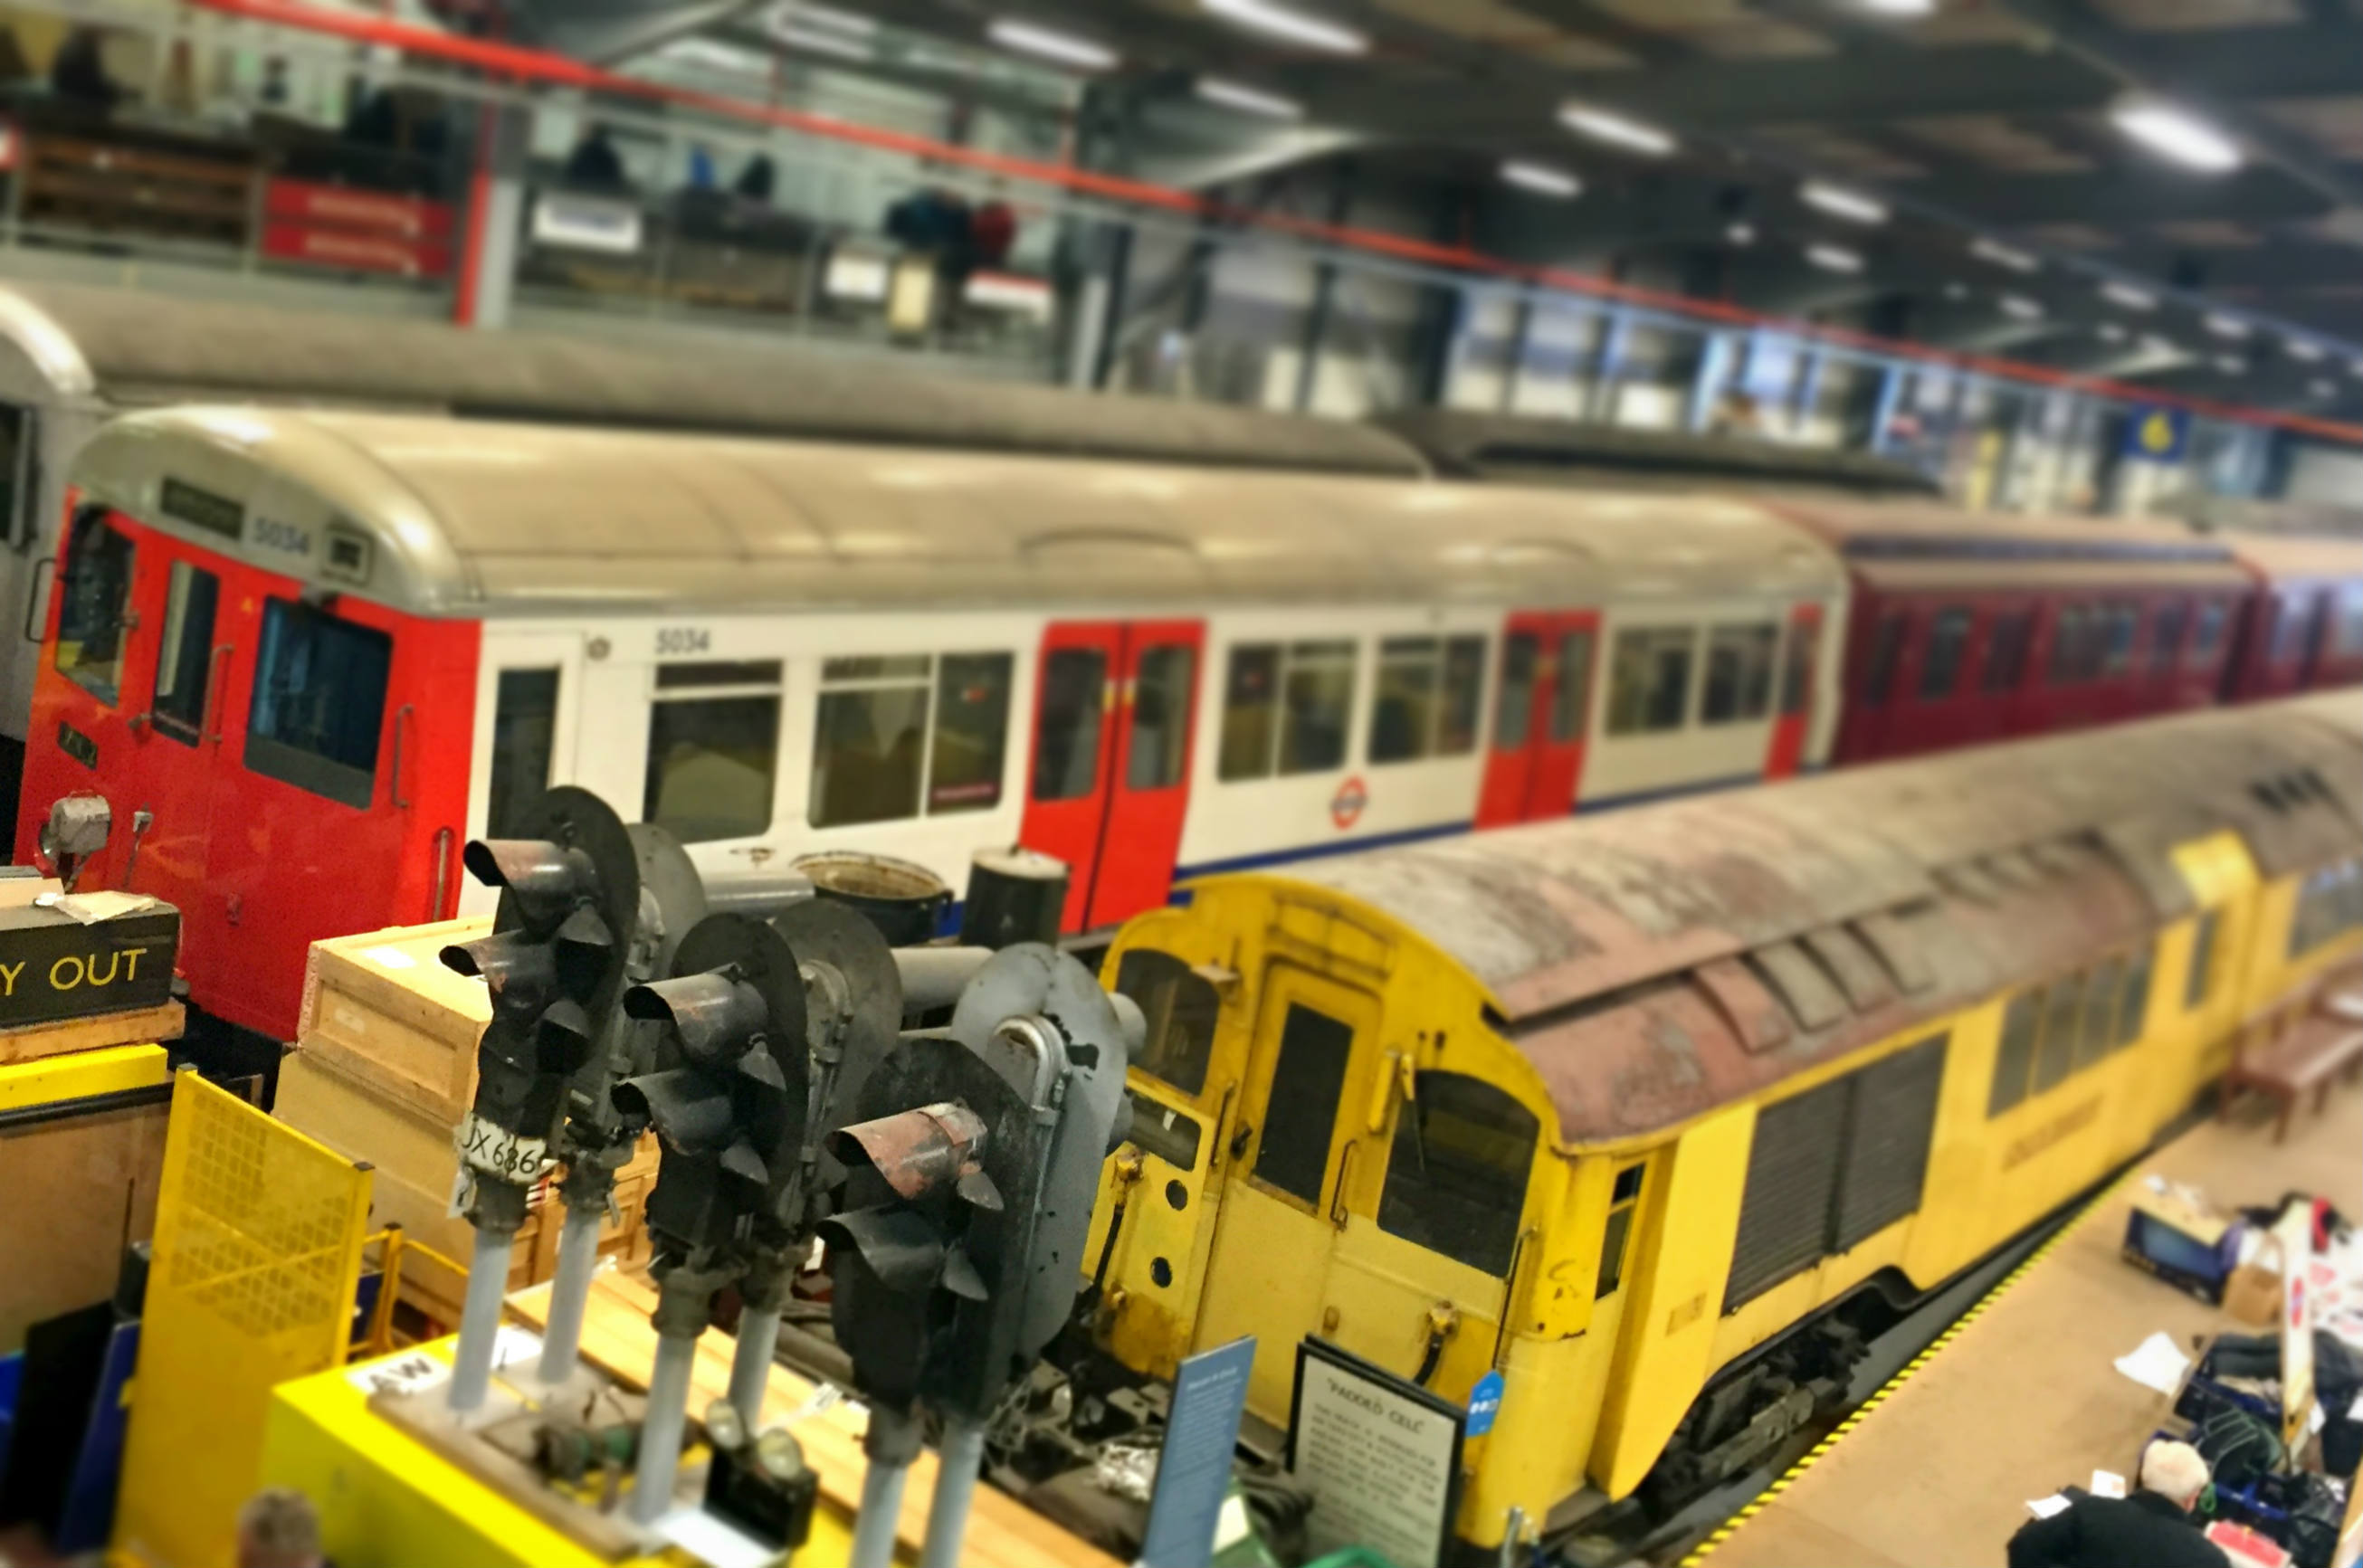 In pictures: the London Transport Museum Depot in Acton